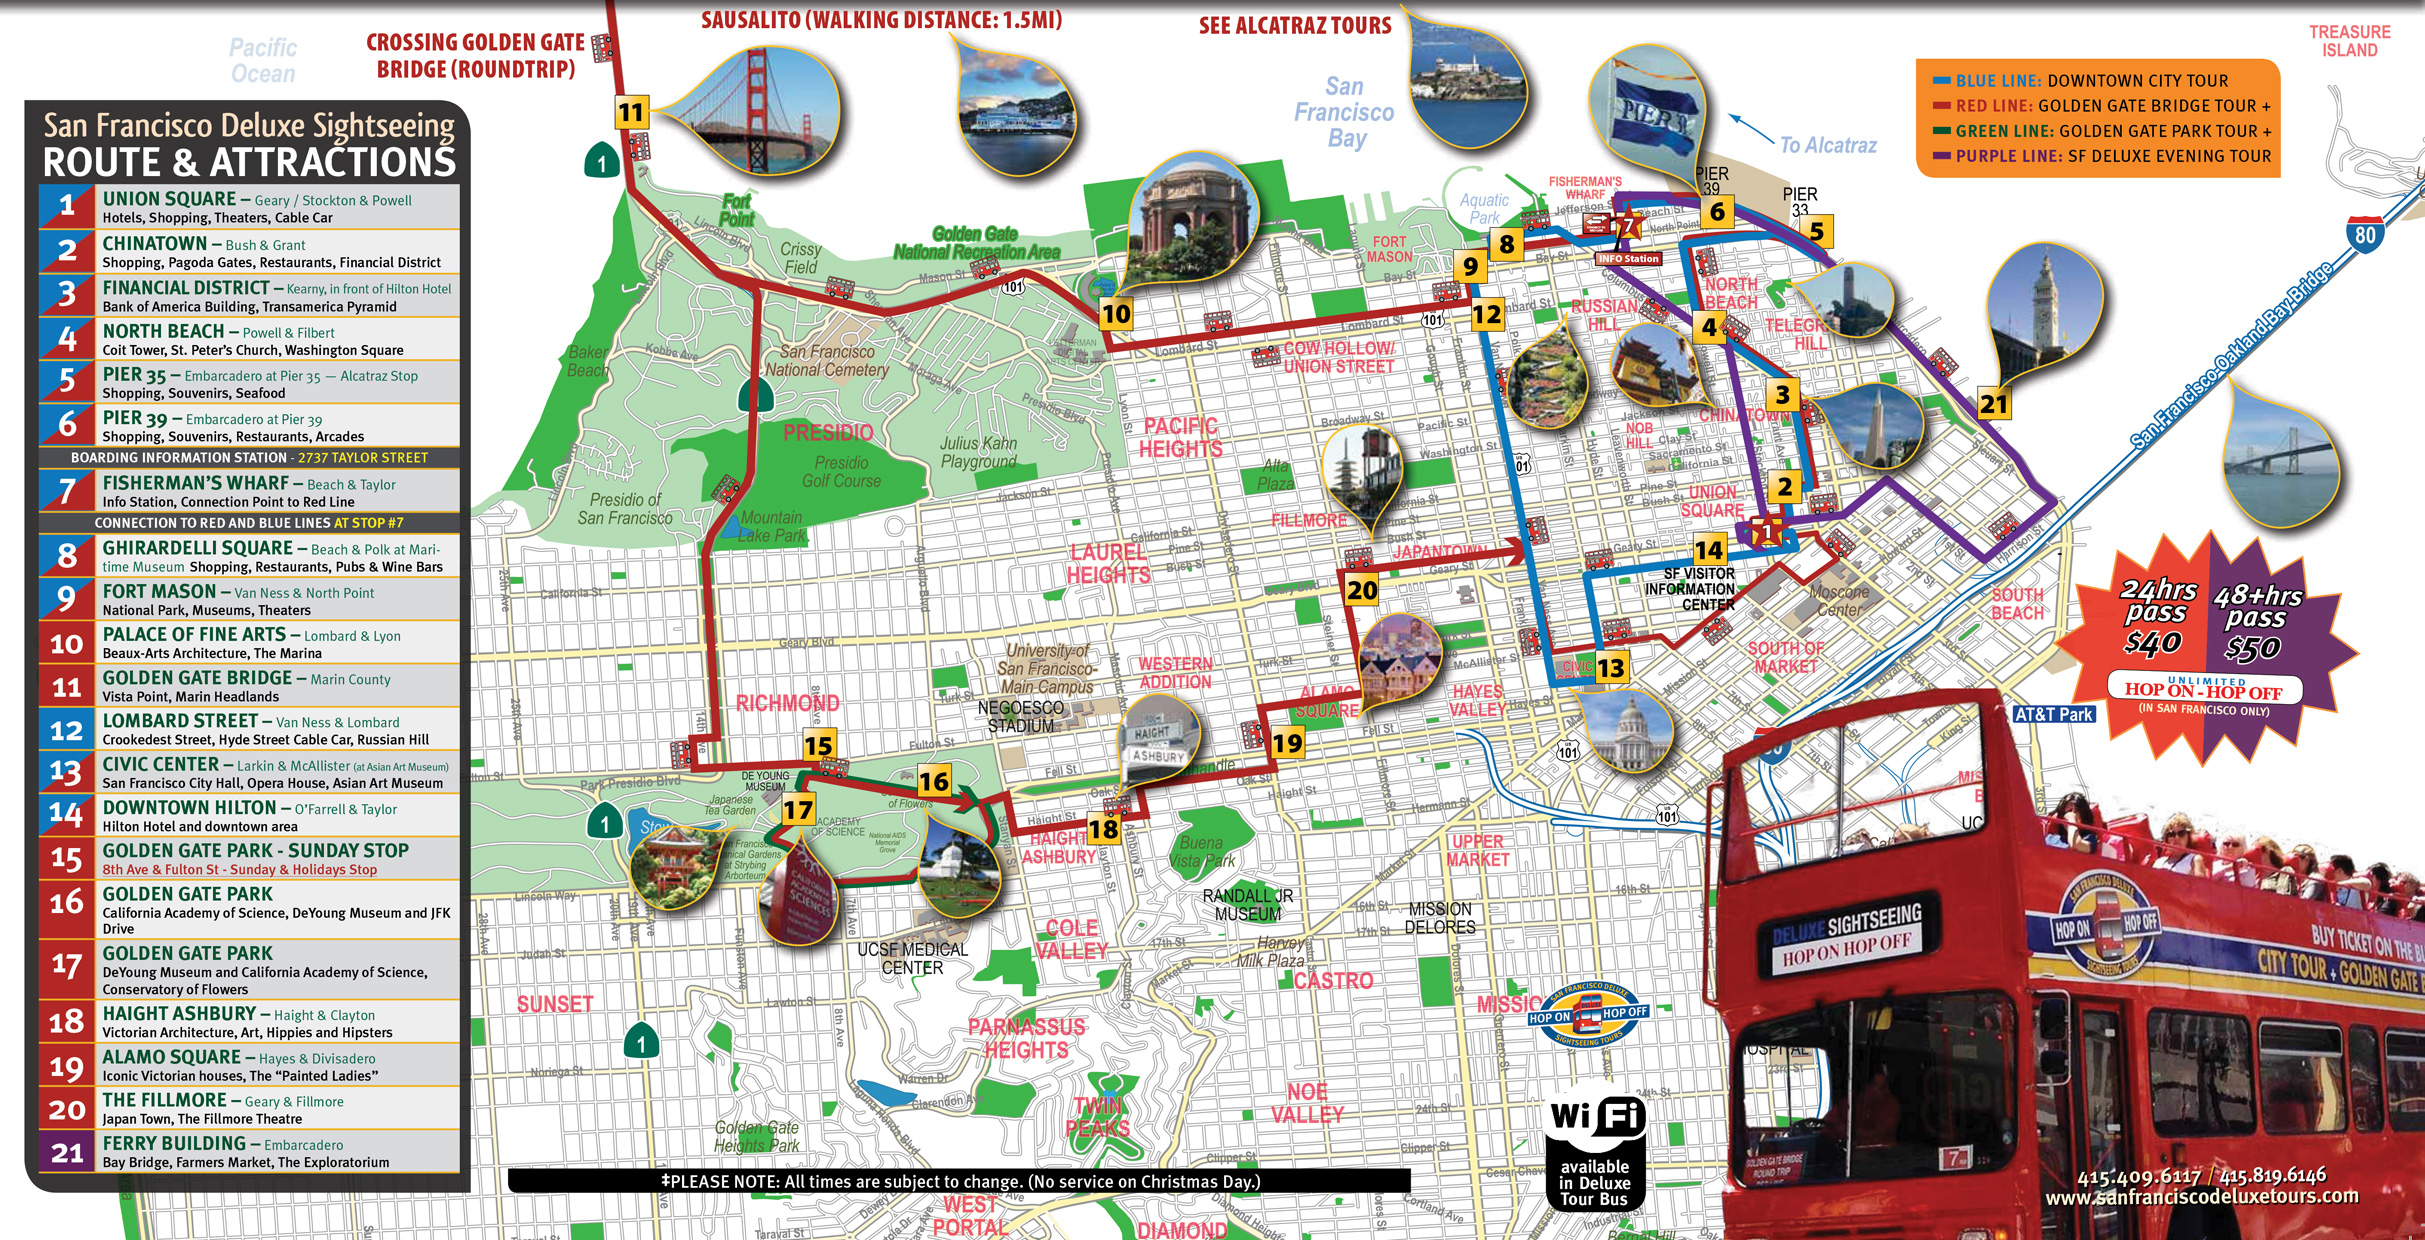 San Francisco Deluxe Sightseeing Tour Routes